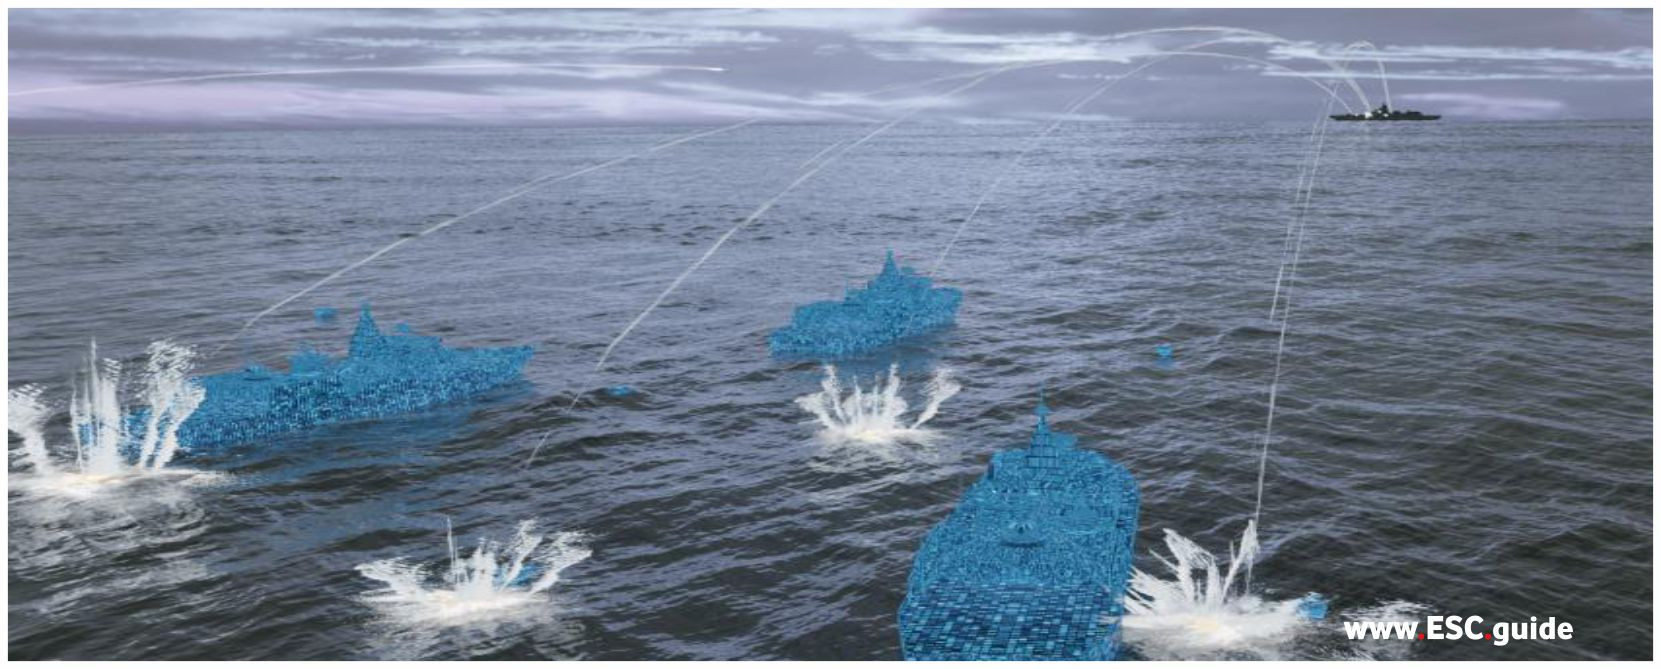 Enemy vessels mistake ghost fleet for actual vessels and fire on it.